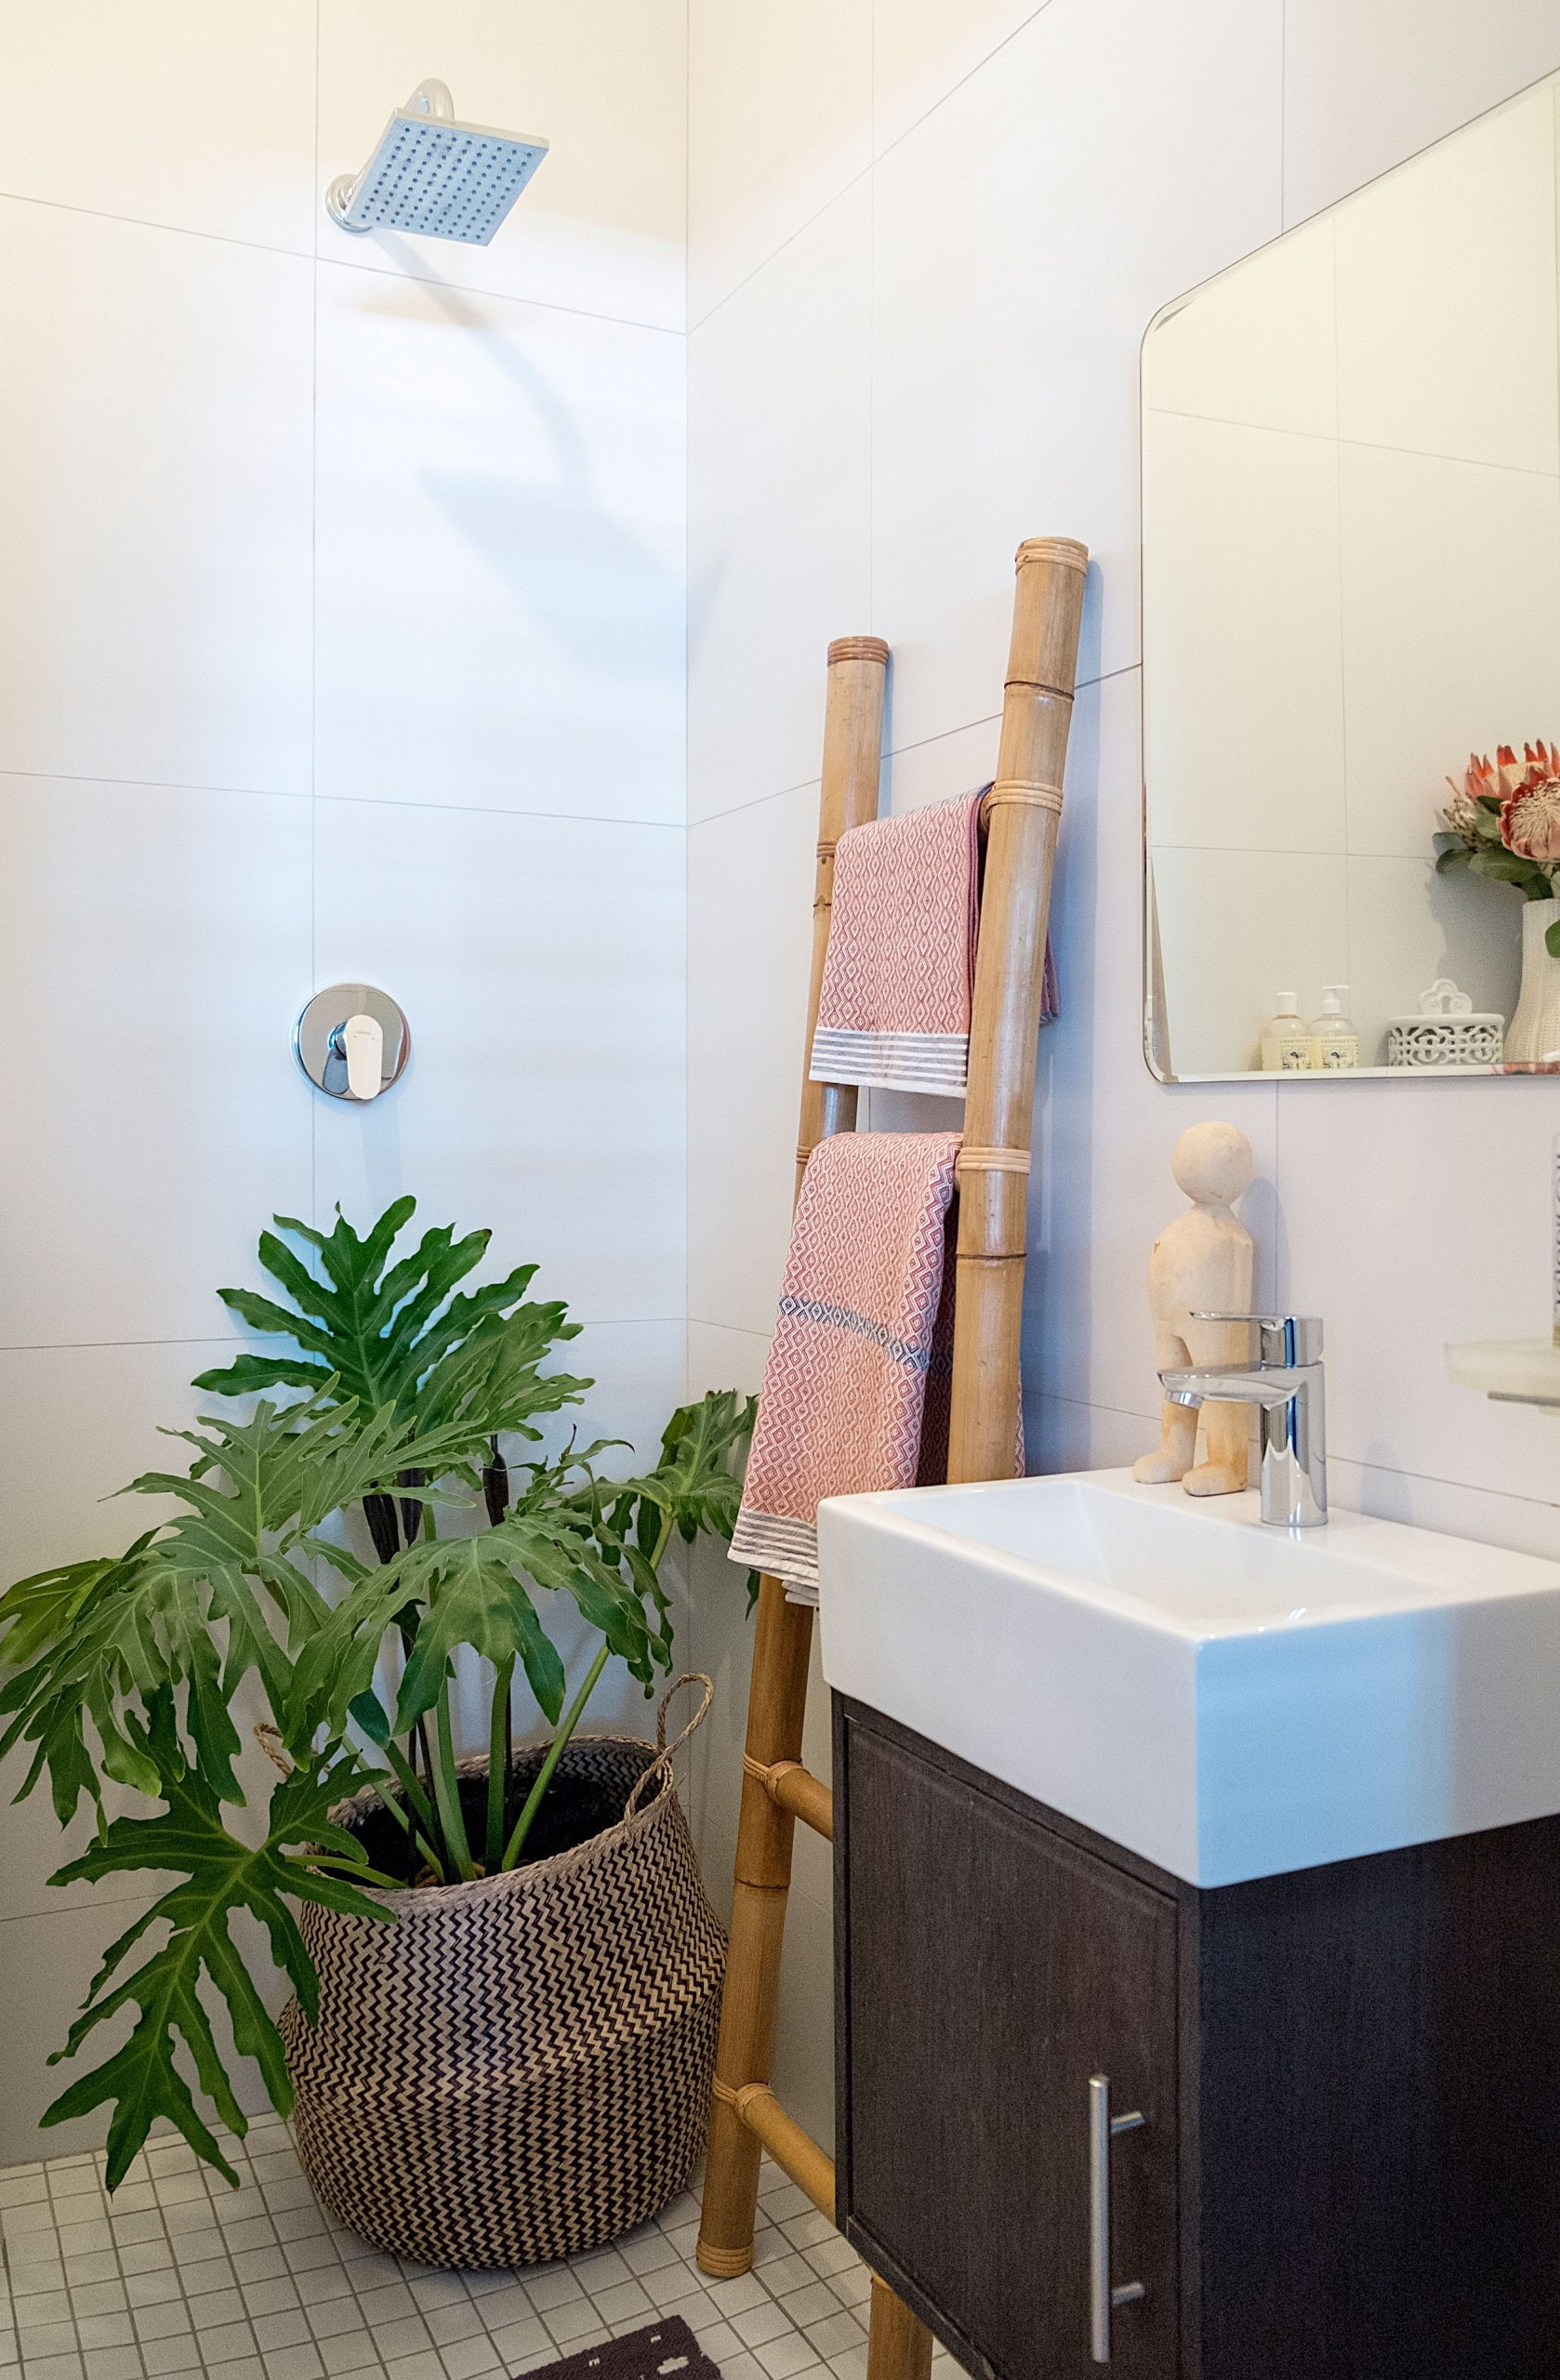 Best Plants For A Windowless Bathroom | Apartment Therapy 30+ Windowless Bathroom Ideas